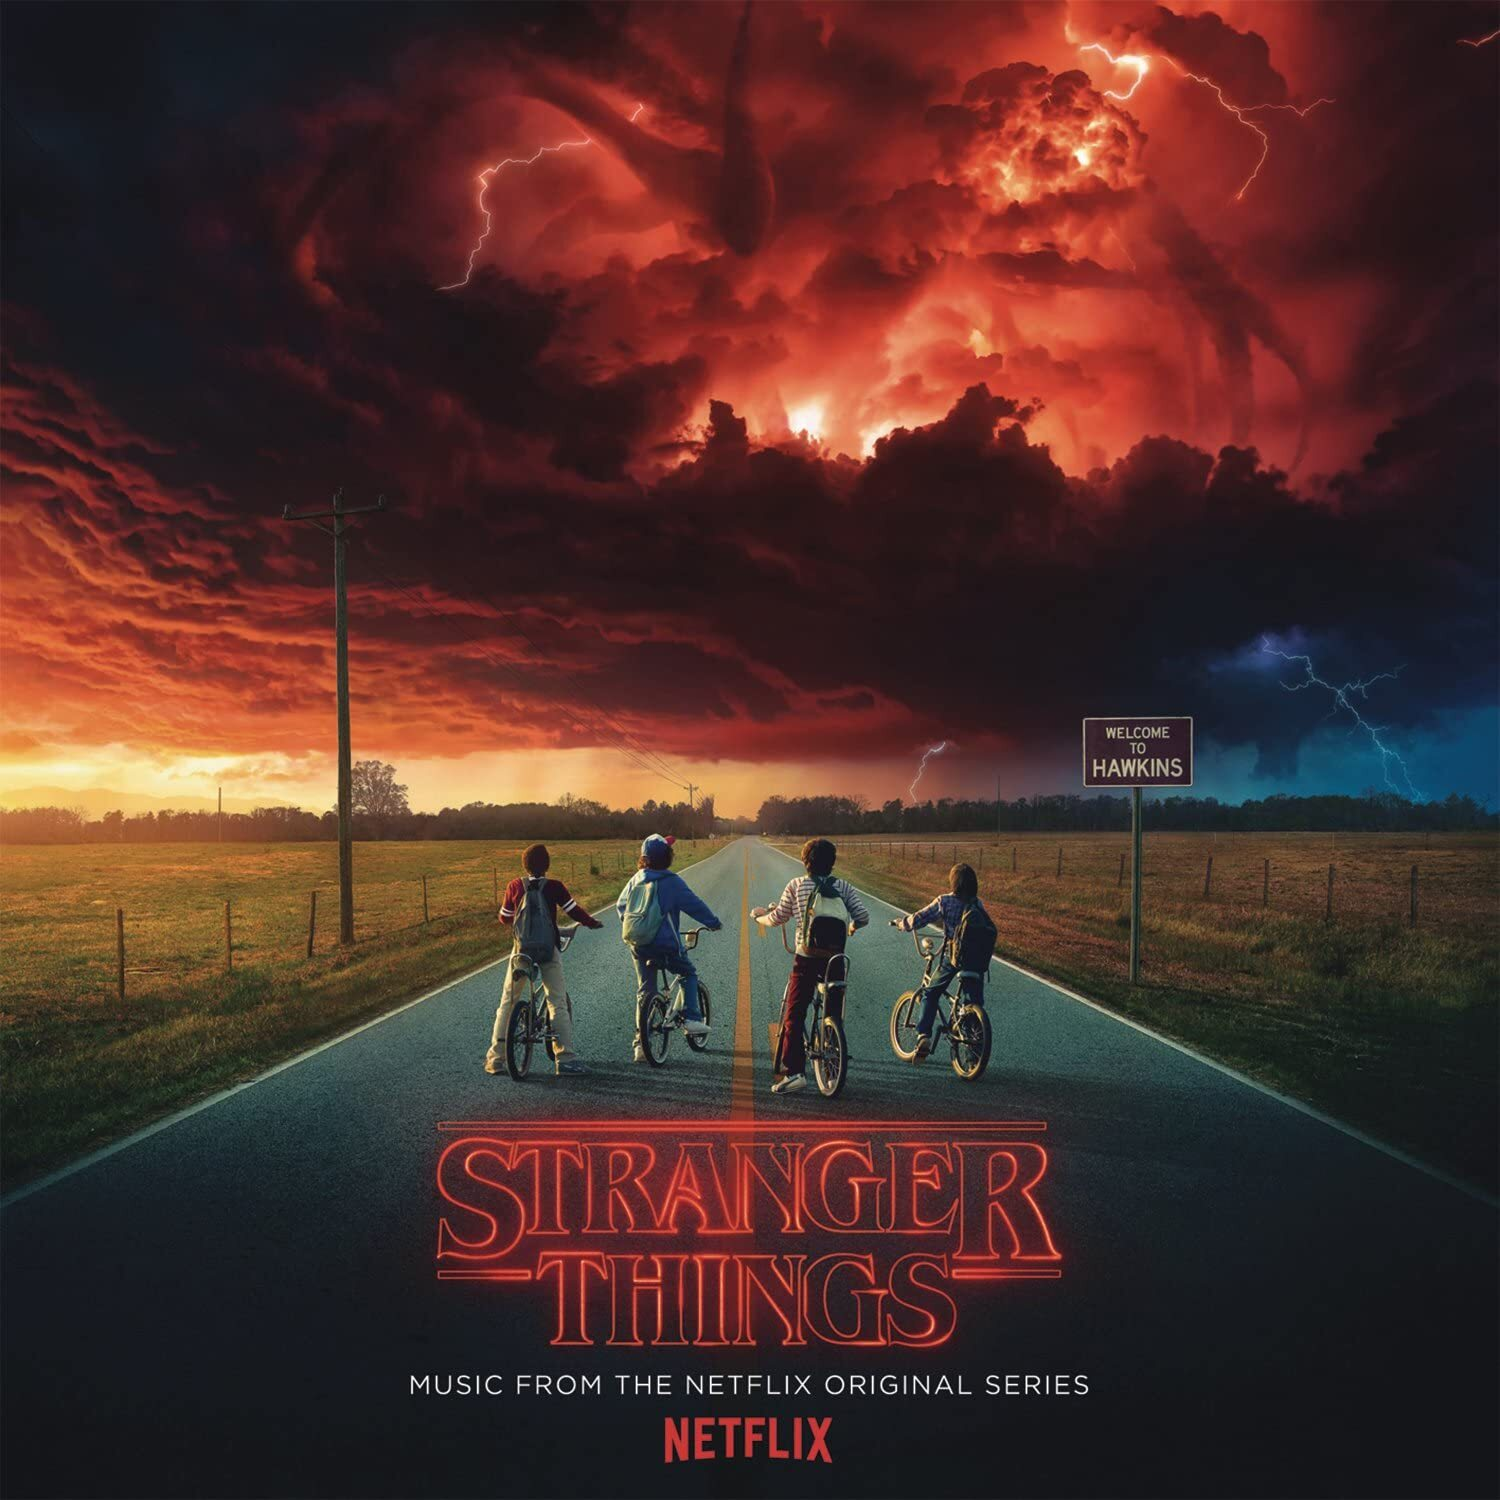 V.A. - STRANGER THINGS: MUSIC FROM THE NETFLIX ORIGINAL SERIES (2LP+Poster+Sticker)